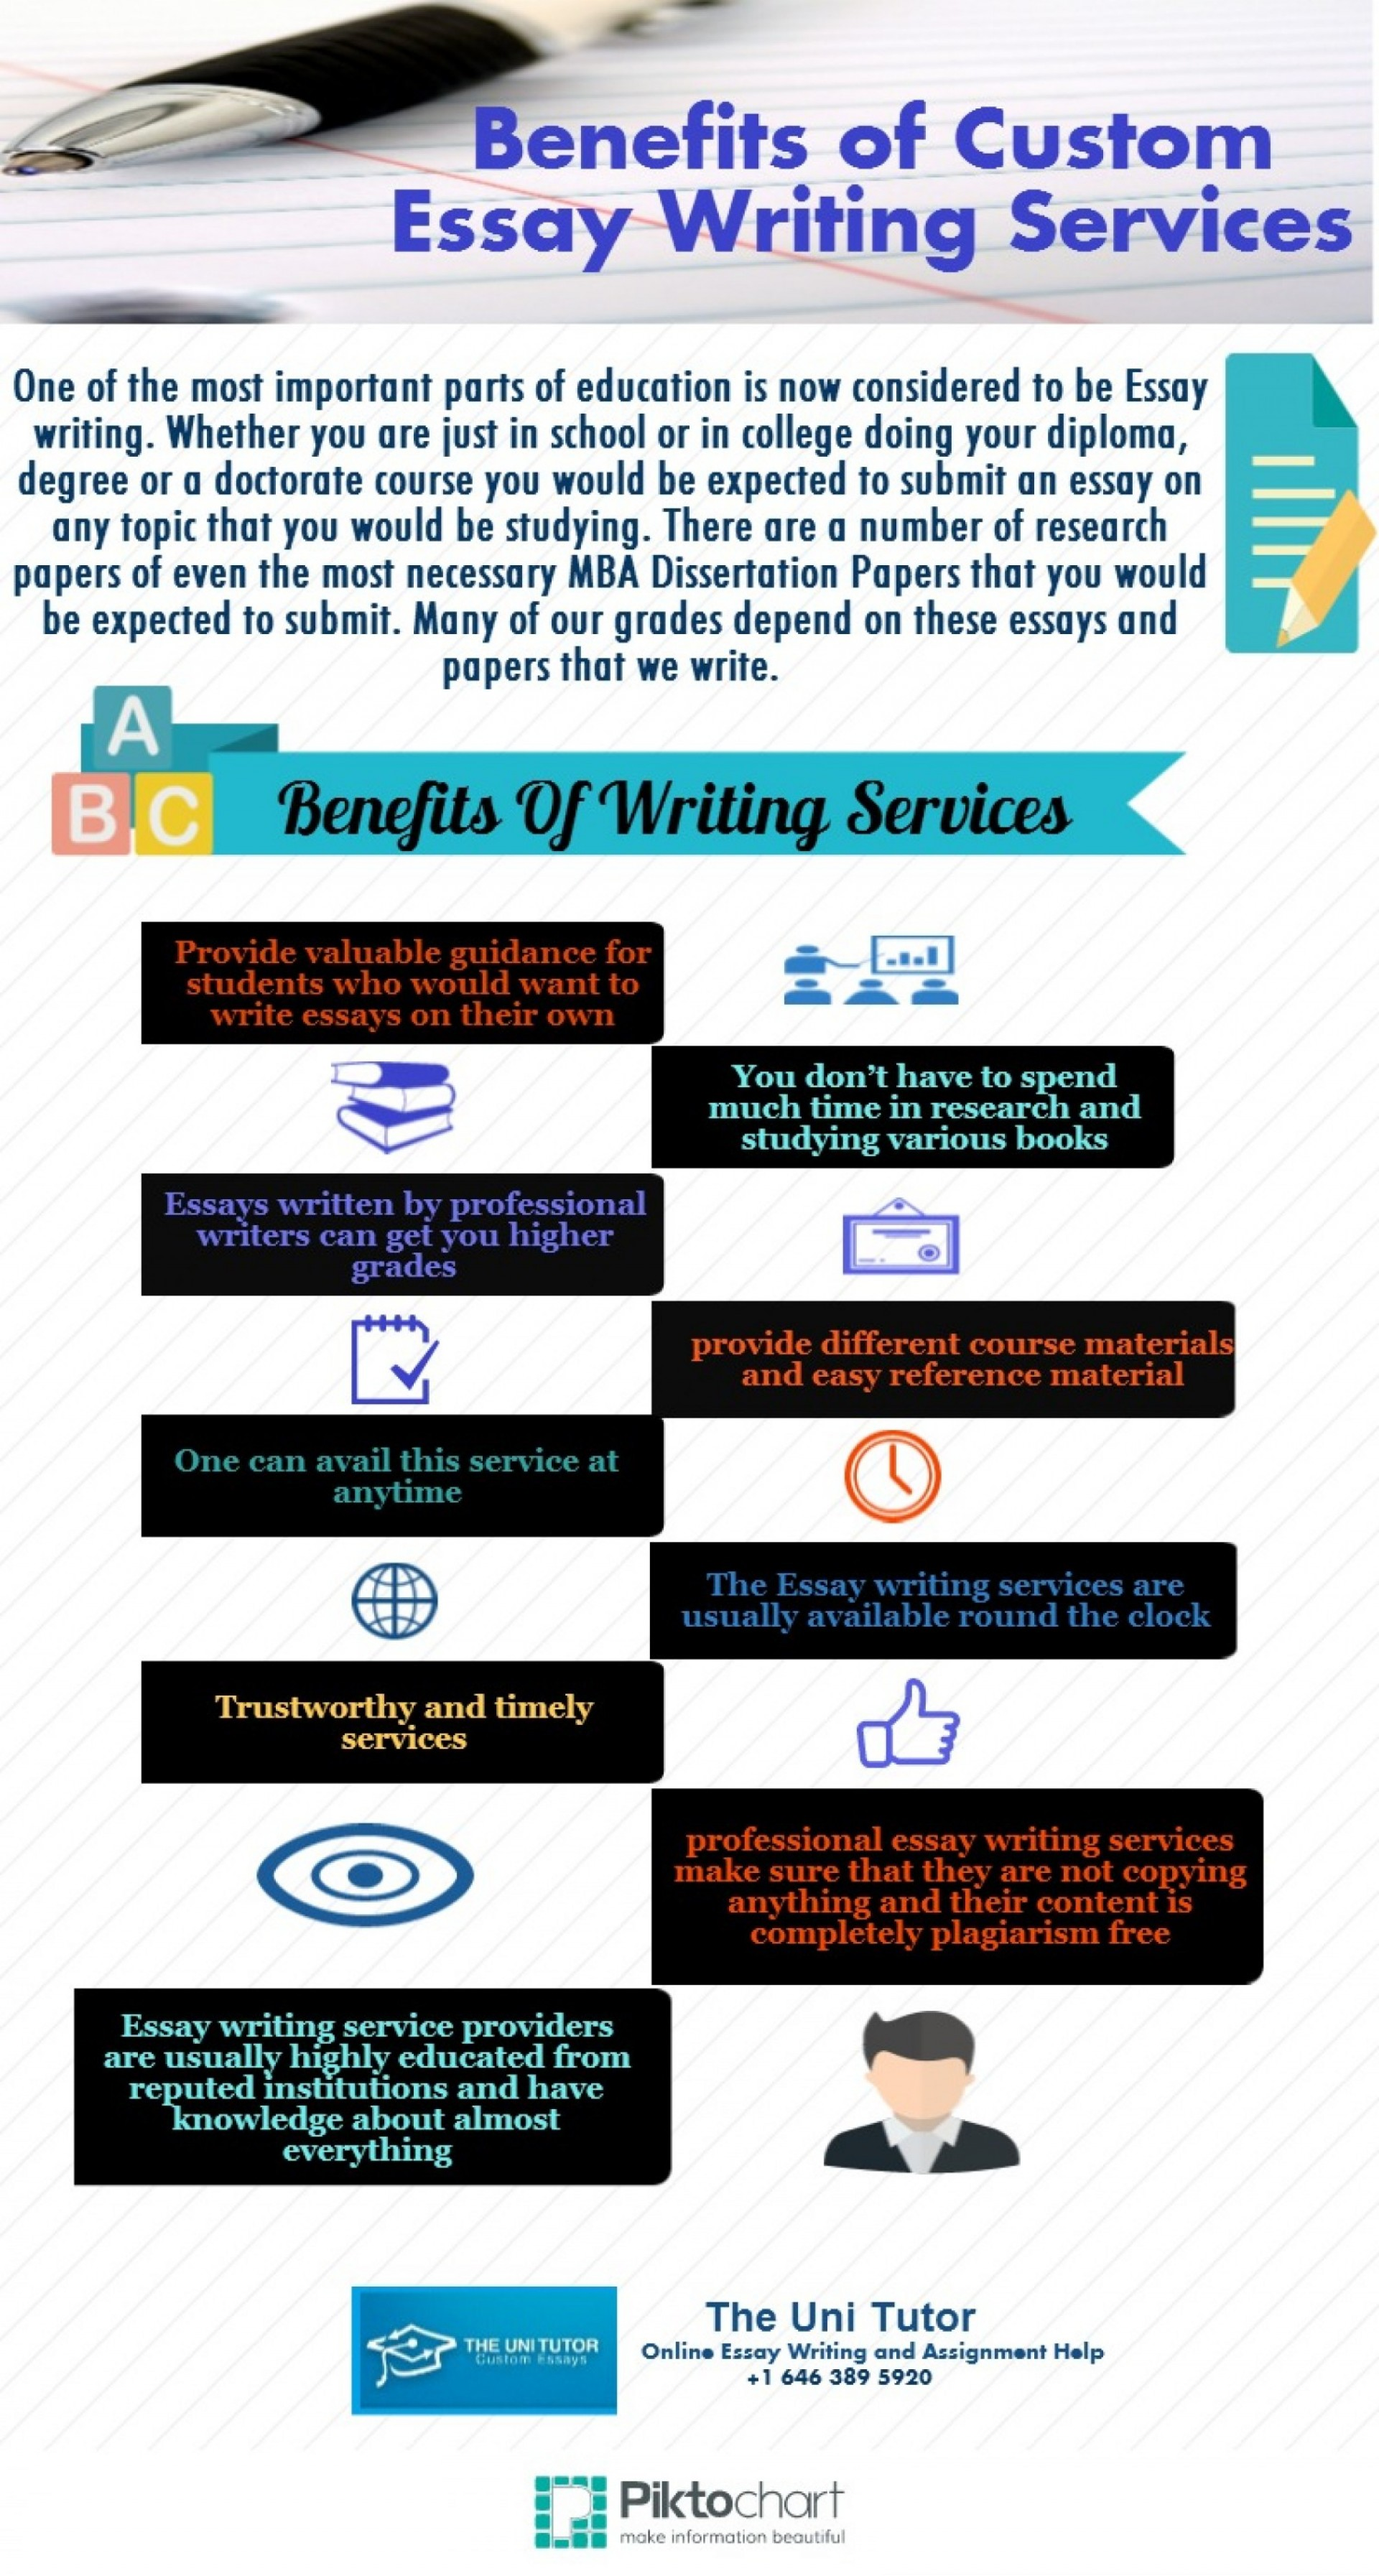 012 Essay Example Benefits Of Custom Writings 539ee0a2052b6 W1500 Beautiful Service Are Writing Services Legal Cheap Canada Reviews 1920